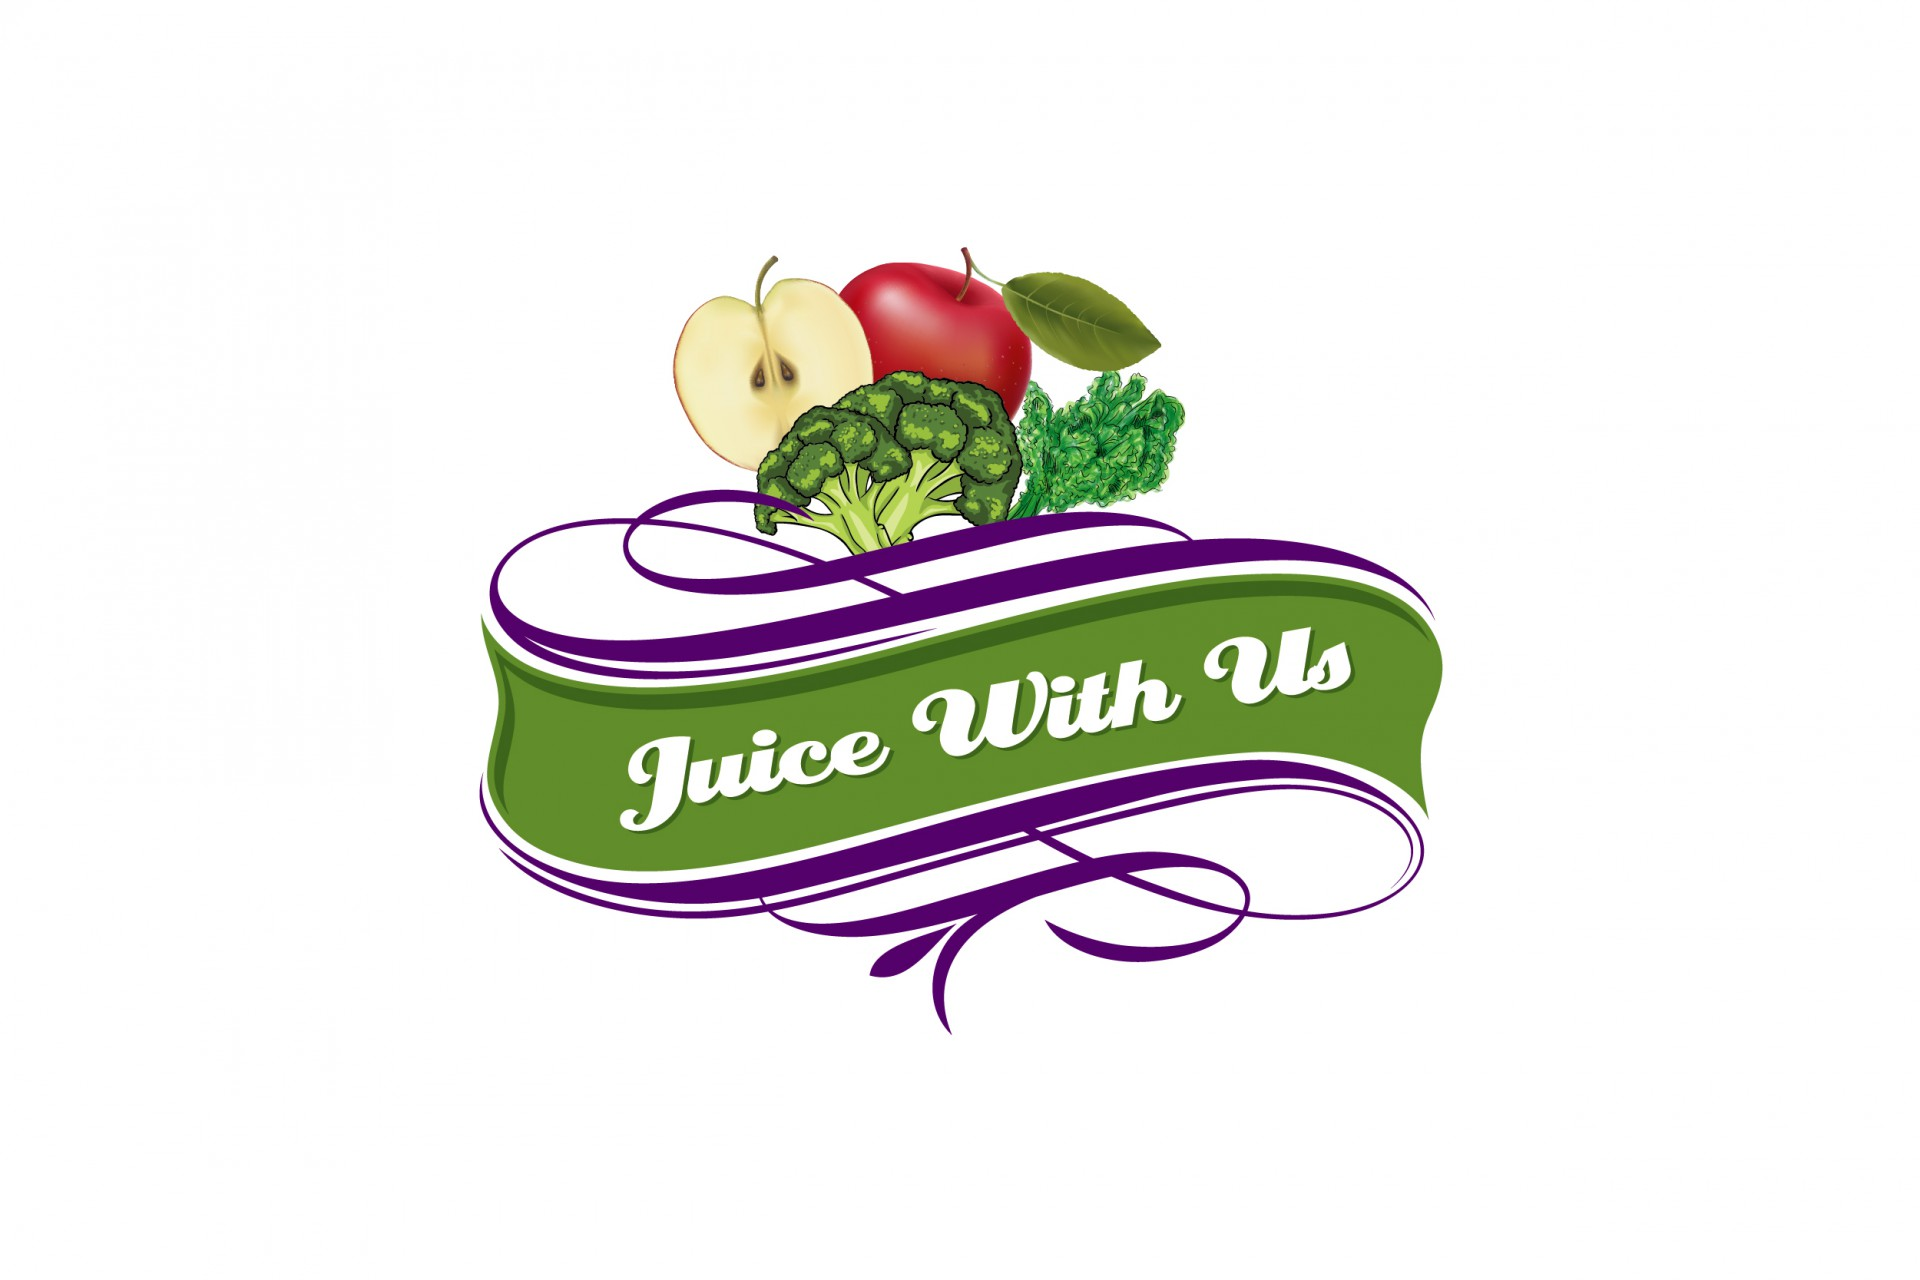 Juice With Us Contributor